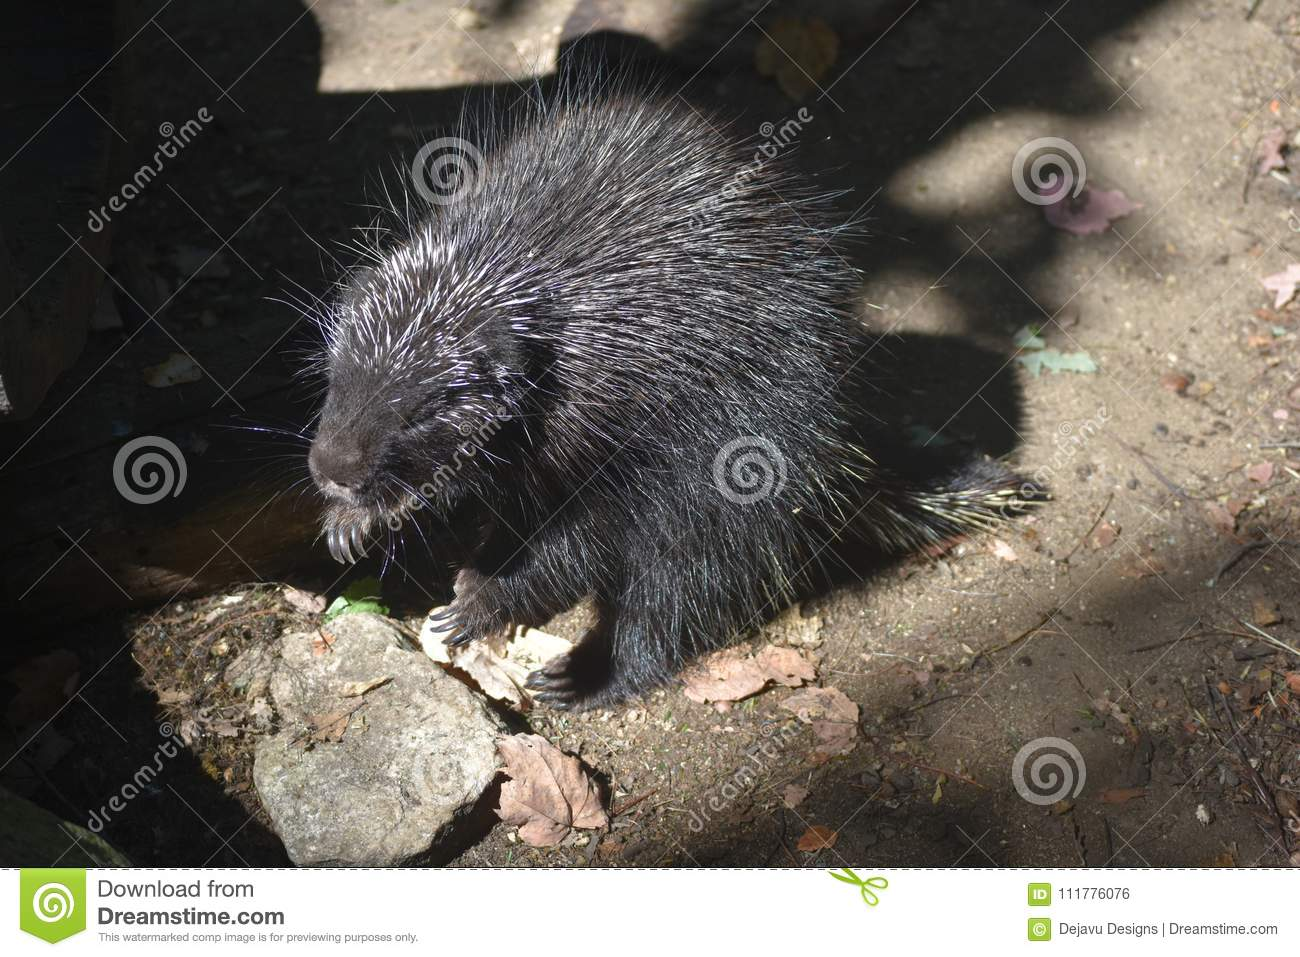 Cute porcupine standing on its hind legs